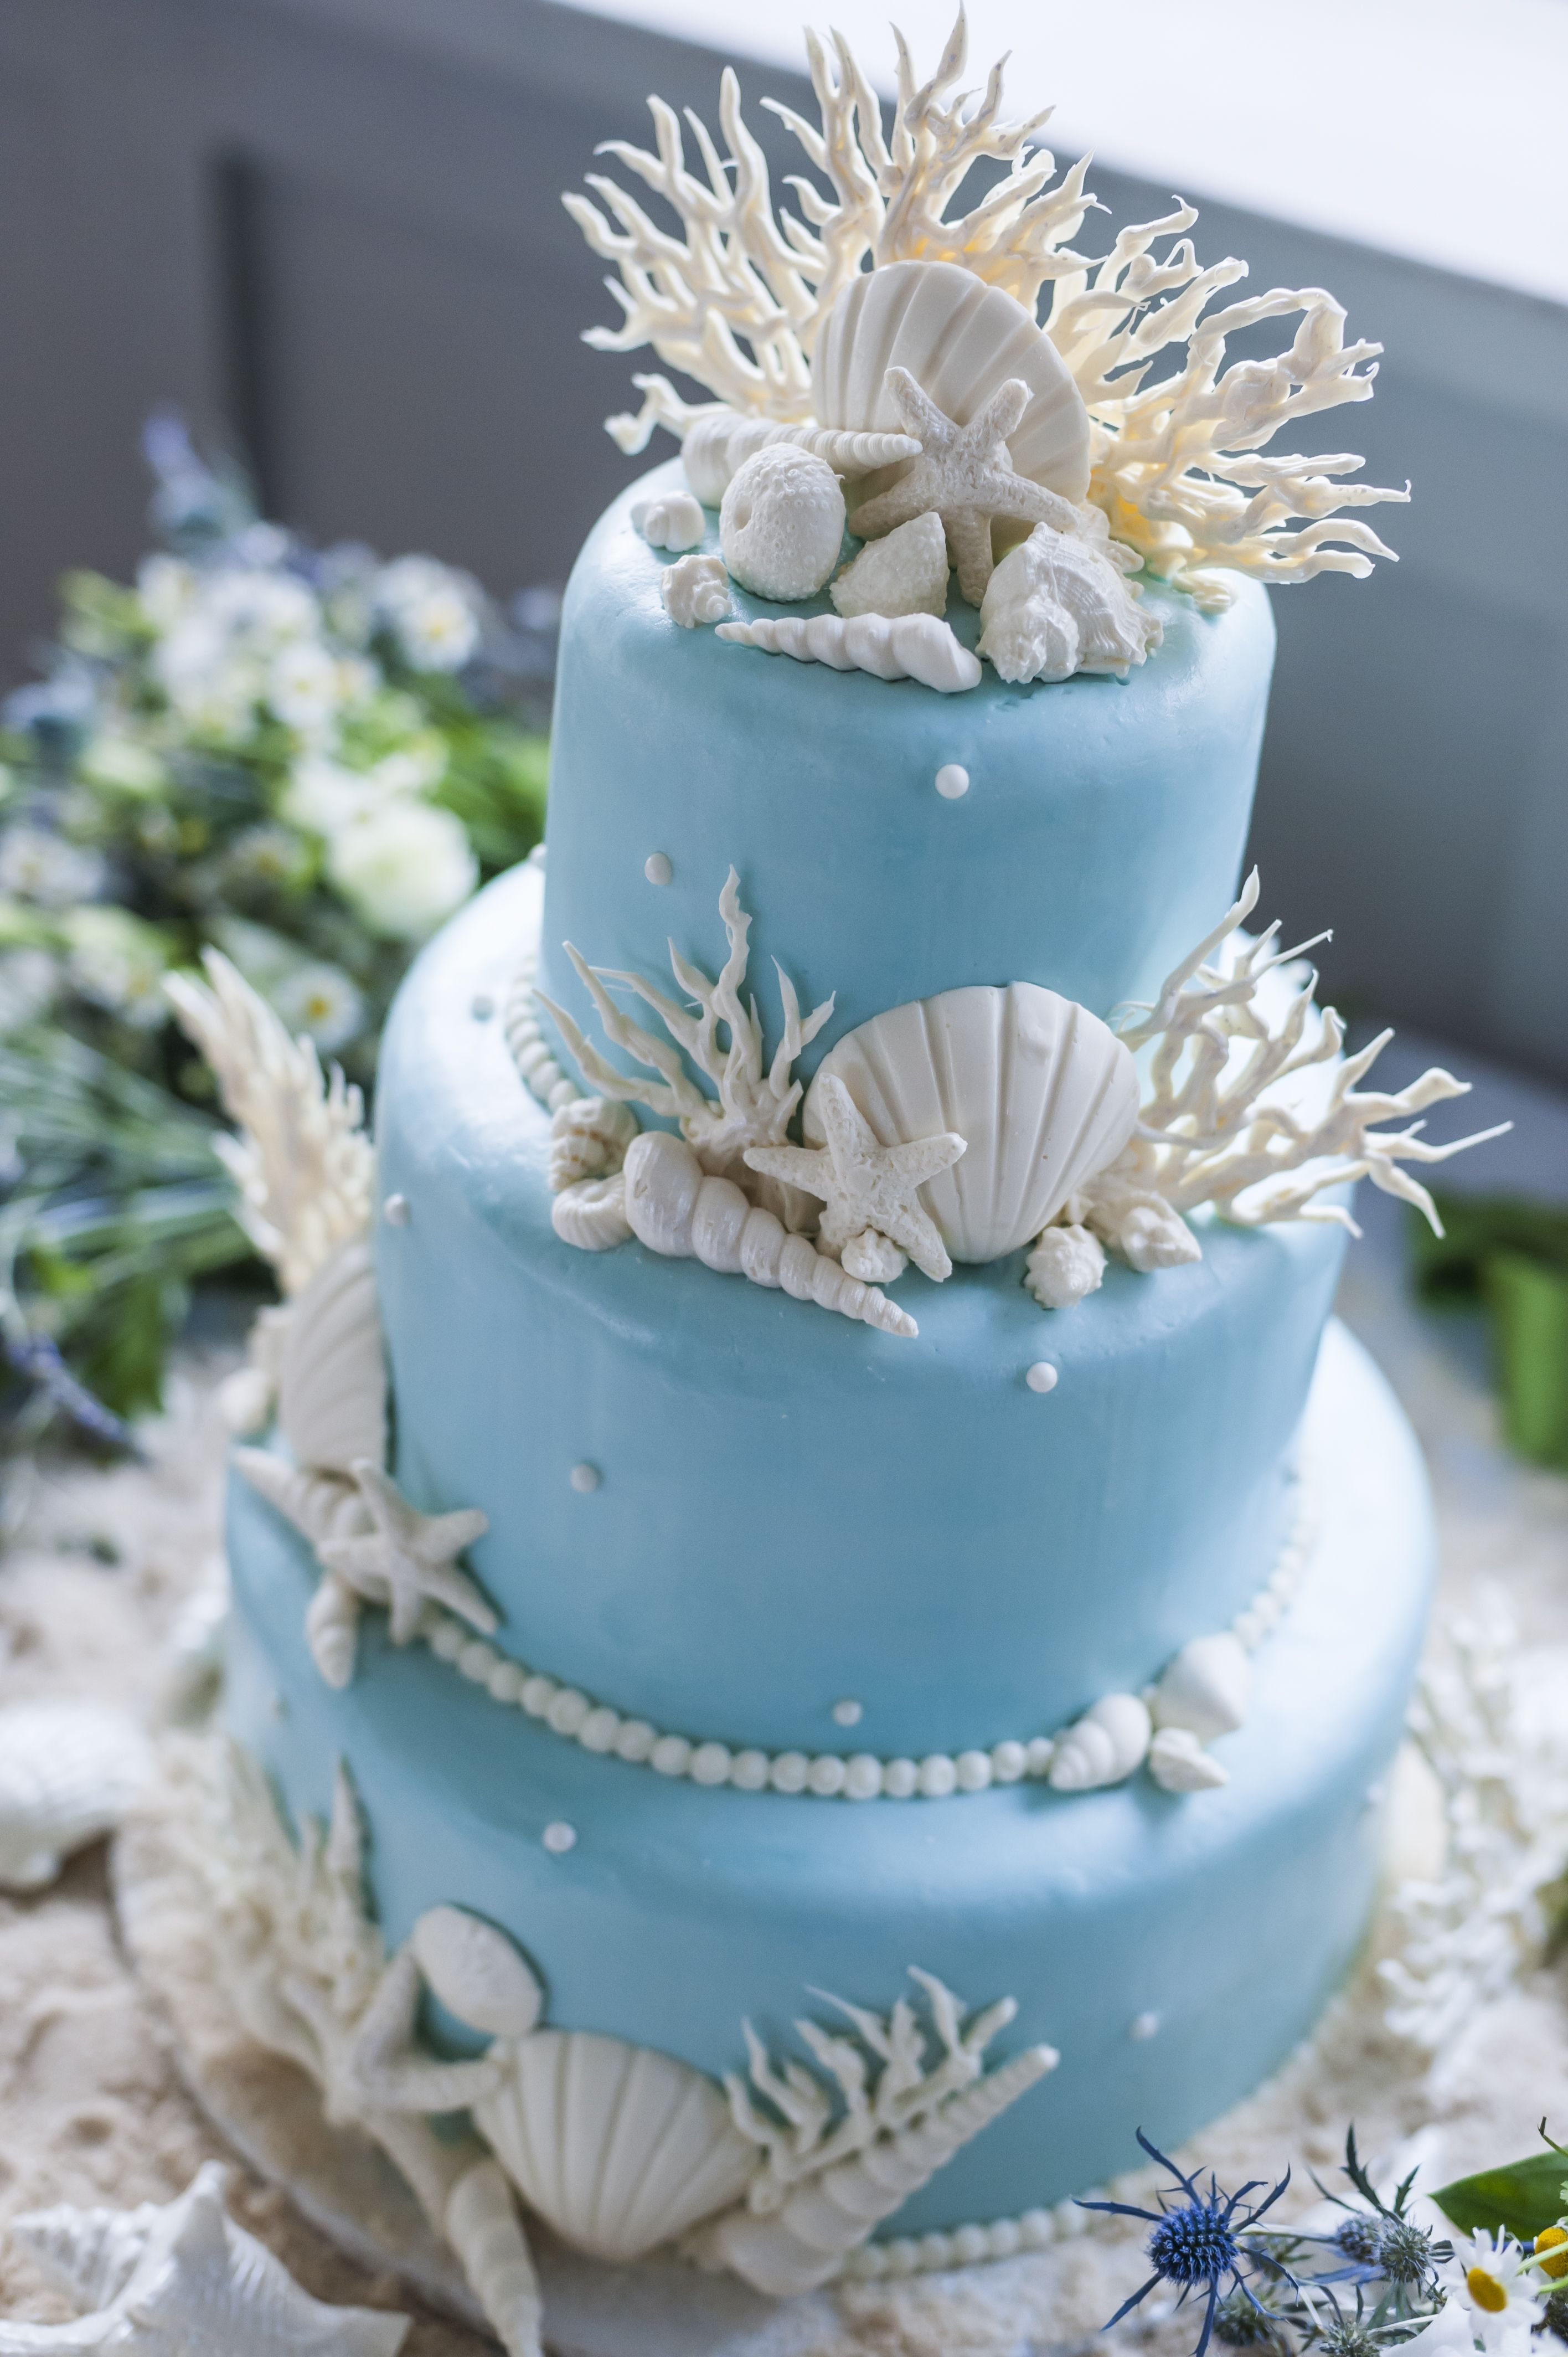 White Seashell And Coral Decorated Blue Wedding Cake Beach Wedding Cake Beach Theme Wedding Cakes Themed Wedding Cakes